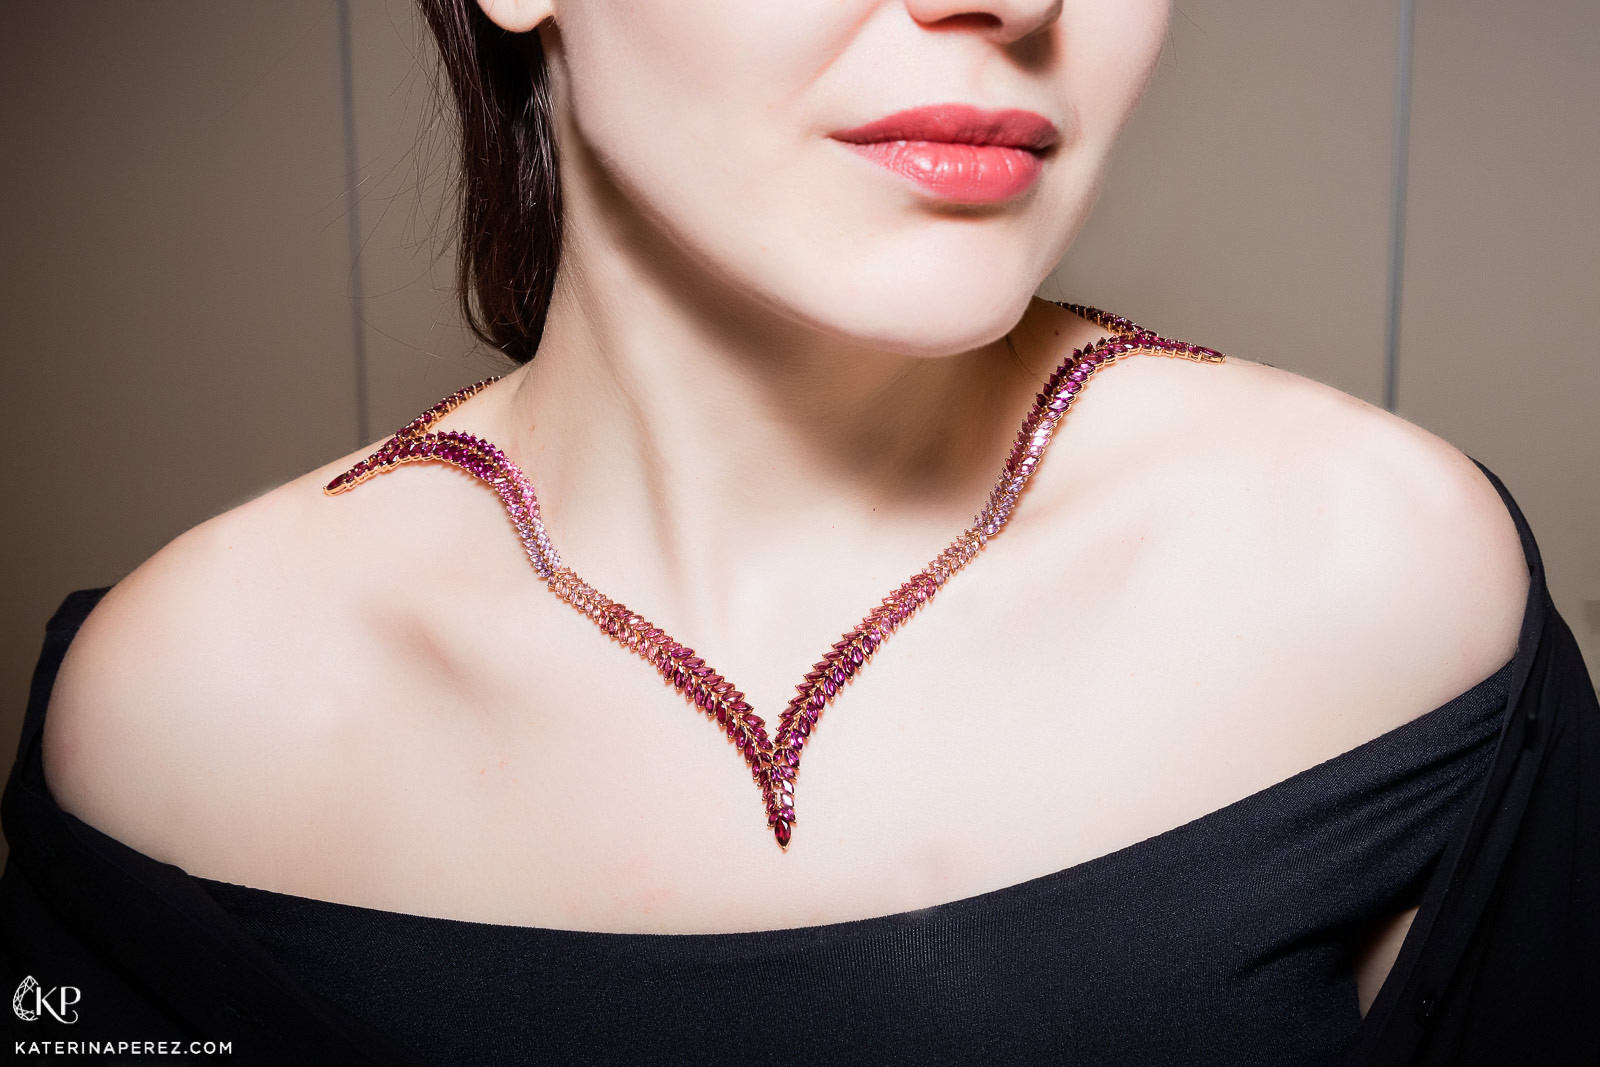 Leyla Abdollahi necklace with rhodolite garnets, amethysts and tourmalines and diamonds. Photo credit: Simon Martner